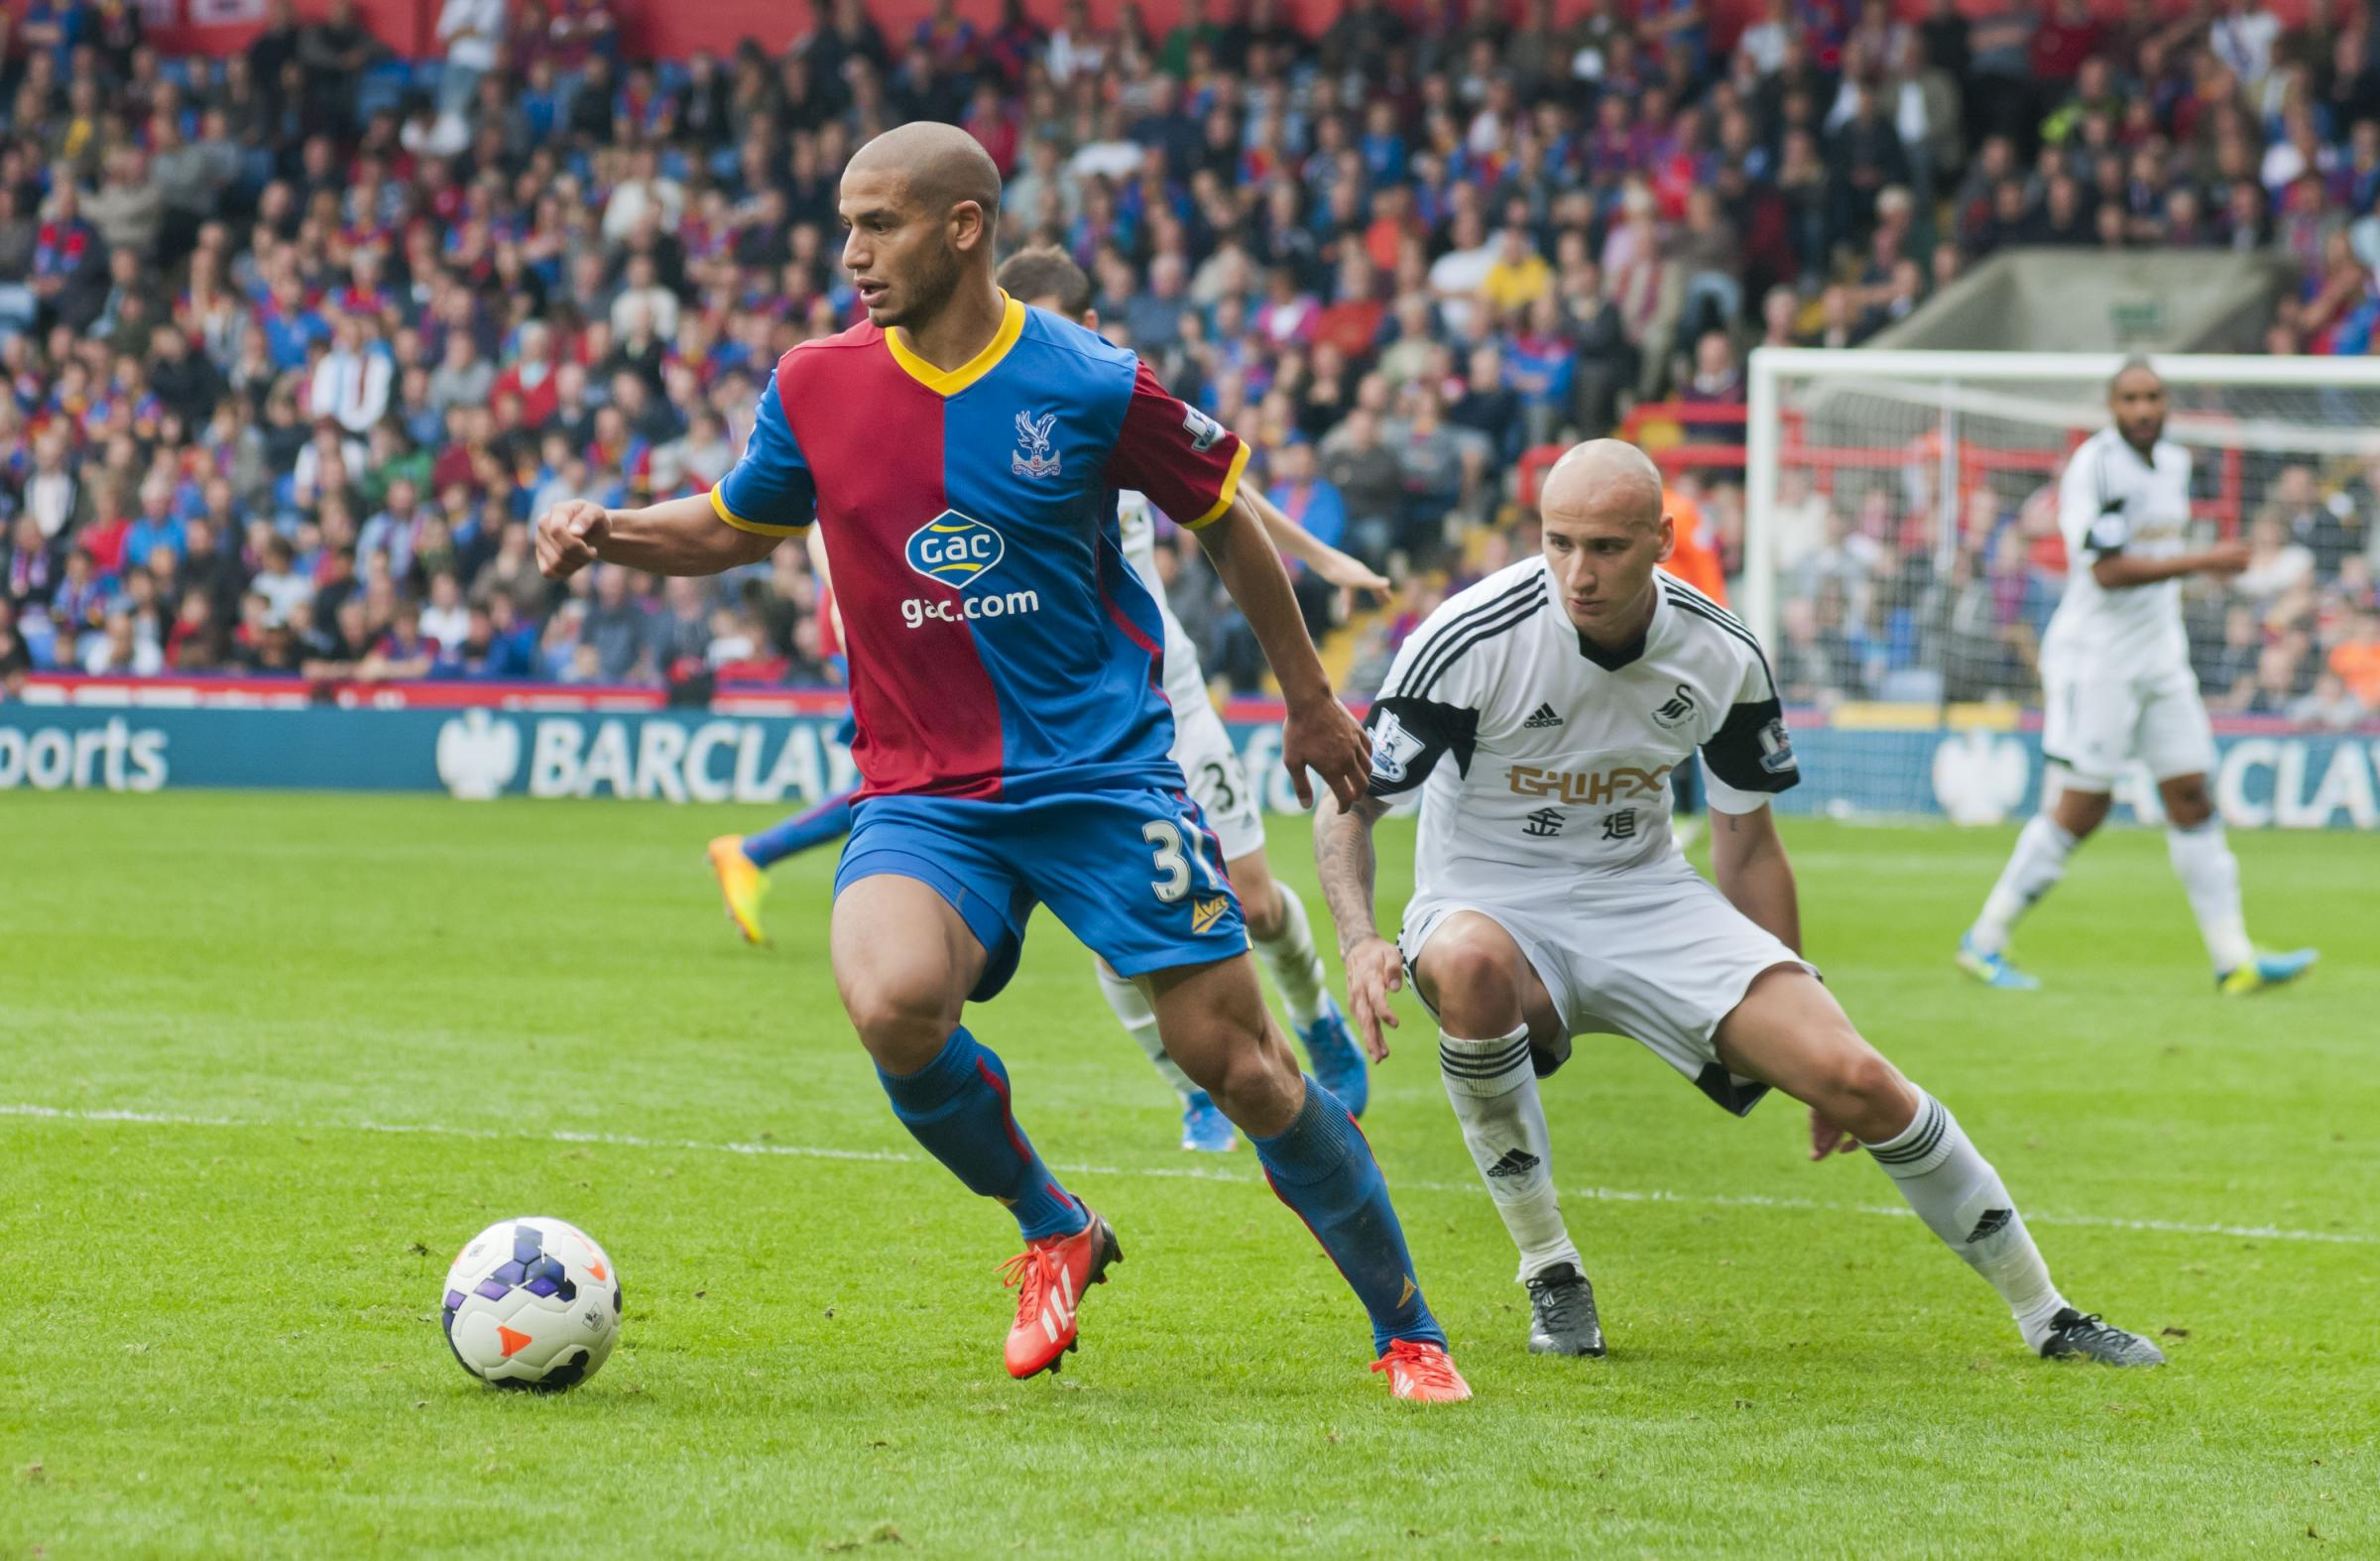 Guedioura in action against Swansea.